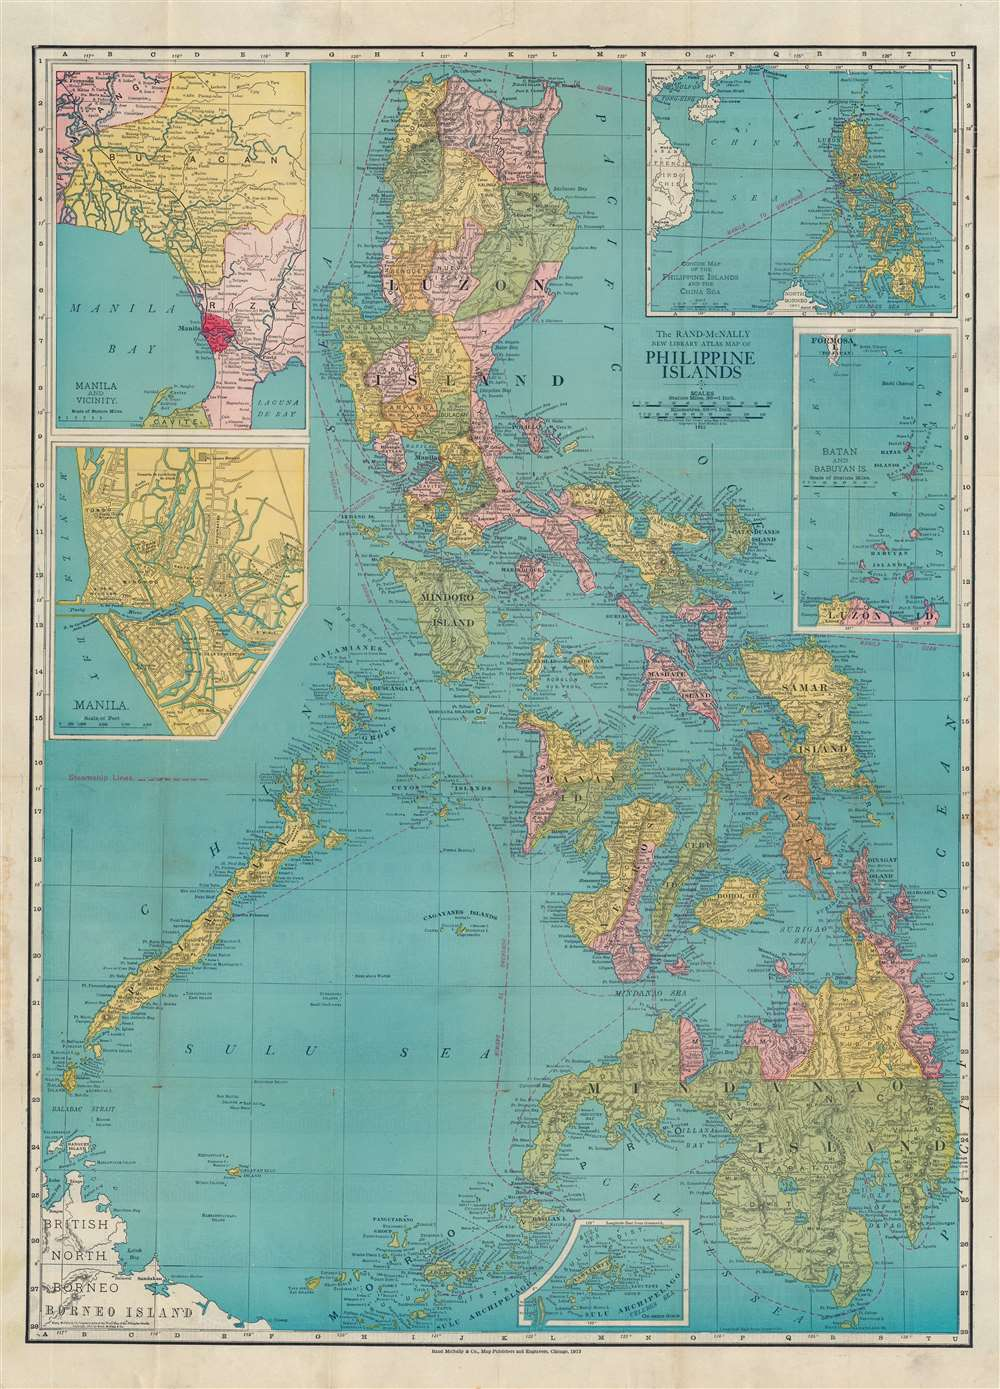 The Rand-McNally New Library Atlas Map of Philippine Islands. - Main View